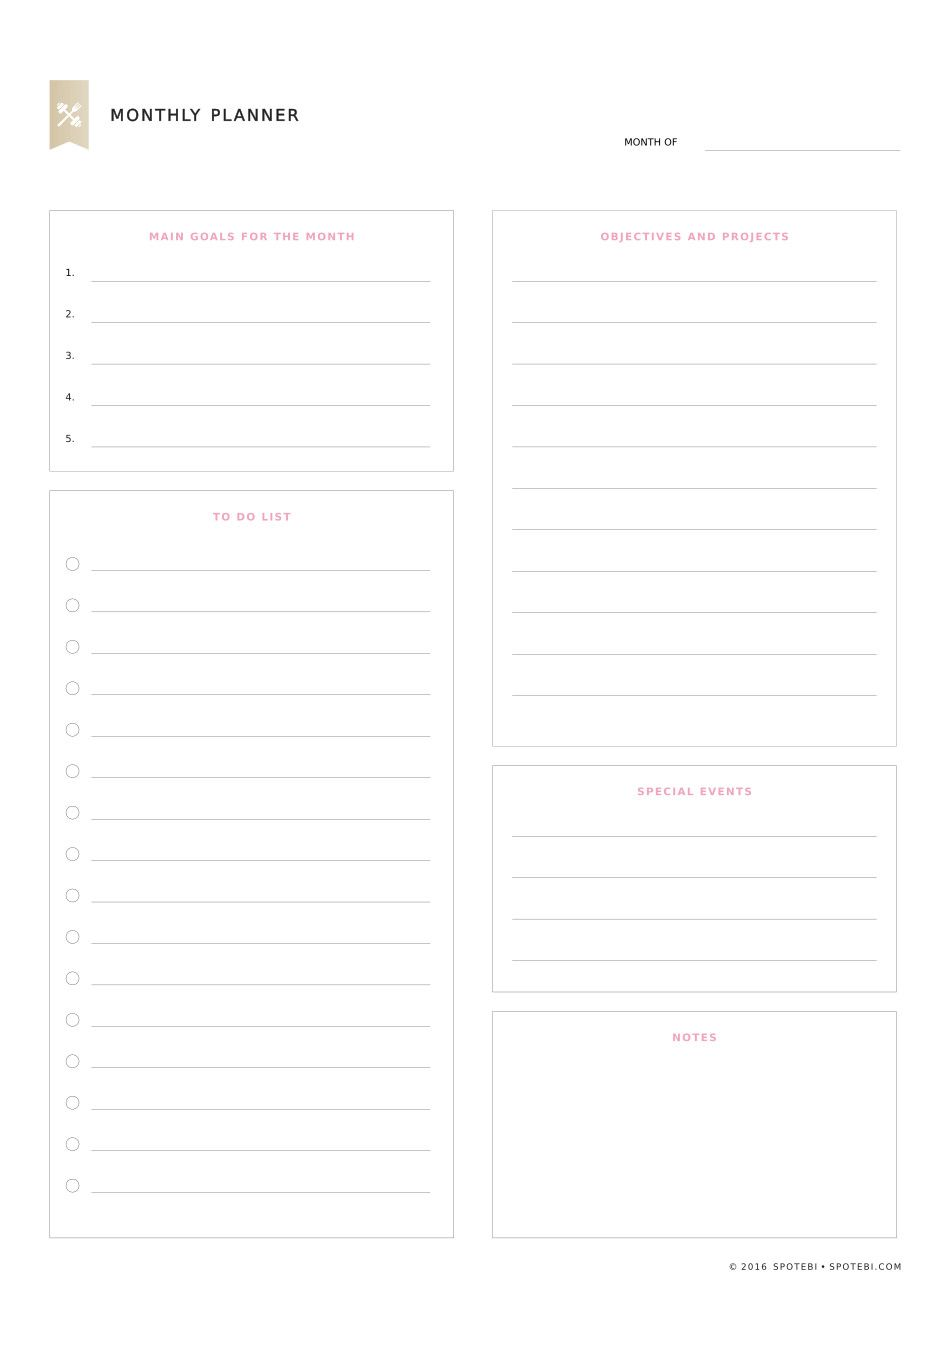 Monthly Planner Template  Monthly Planner Template Planner